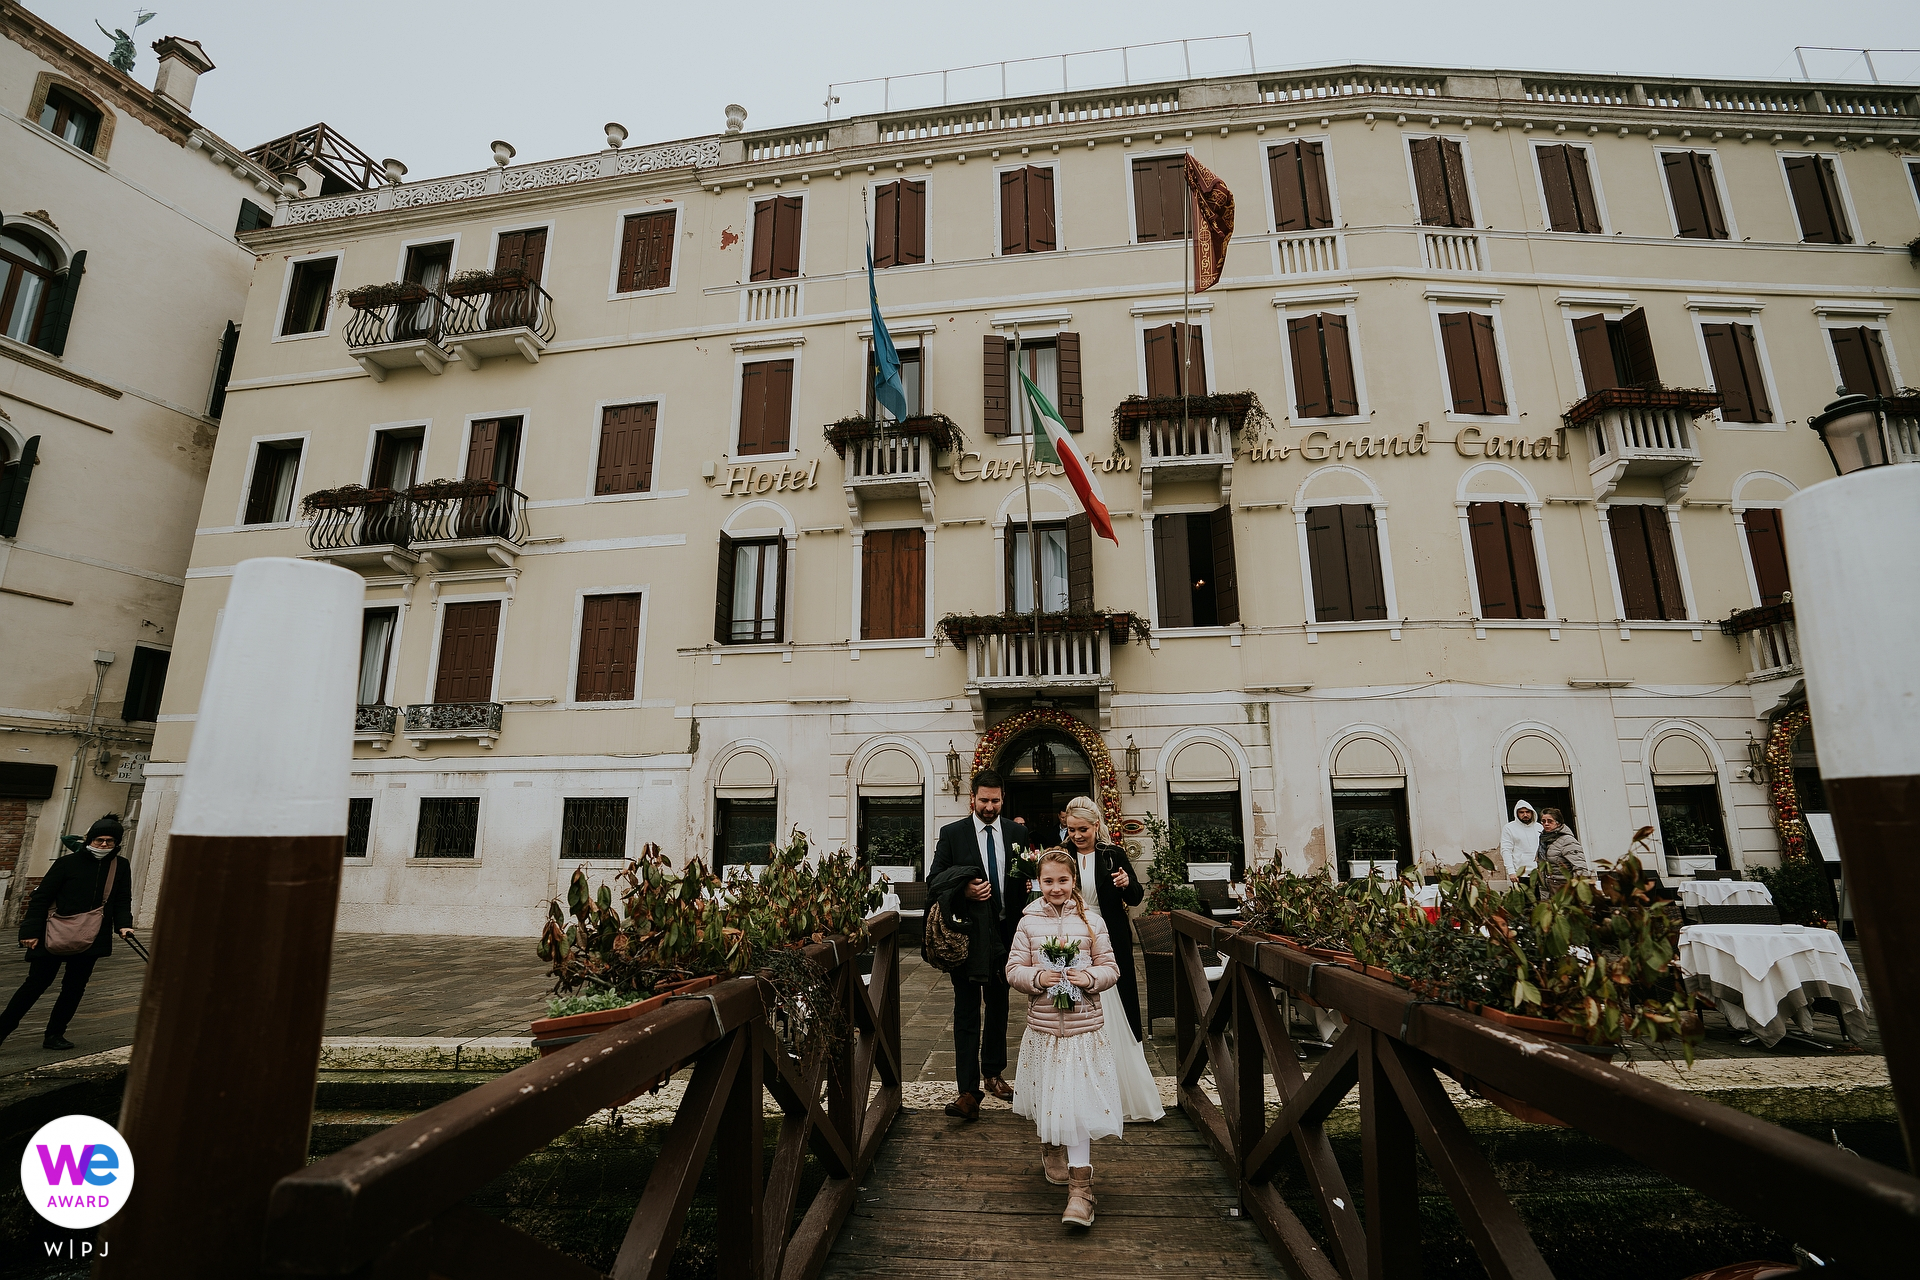 Hotel Carlton On The Grand Canal, Venezia, Veneto, Italy Elopement Photographer | The bride and groom cross the pier to reach the taxi waiting for them